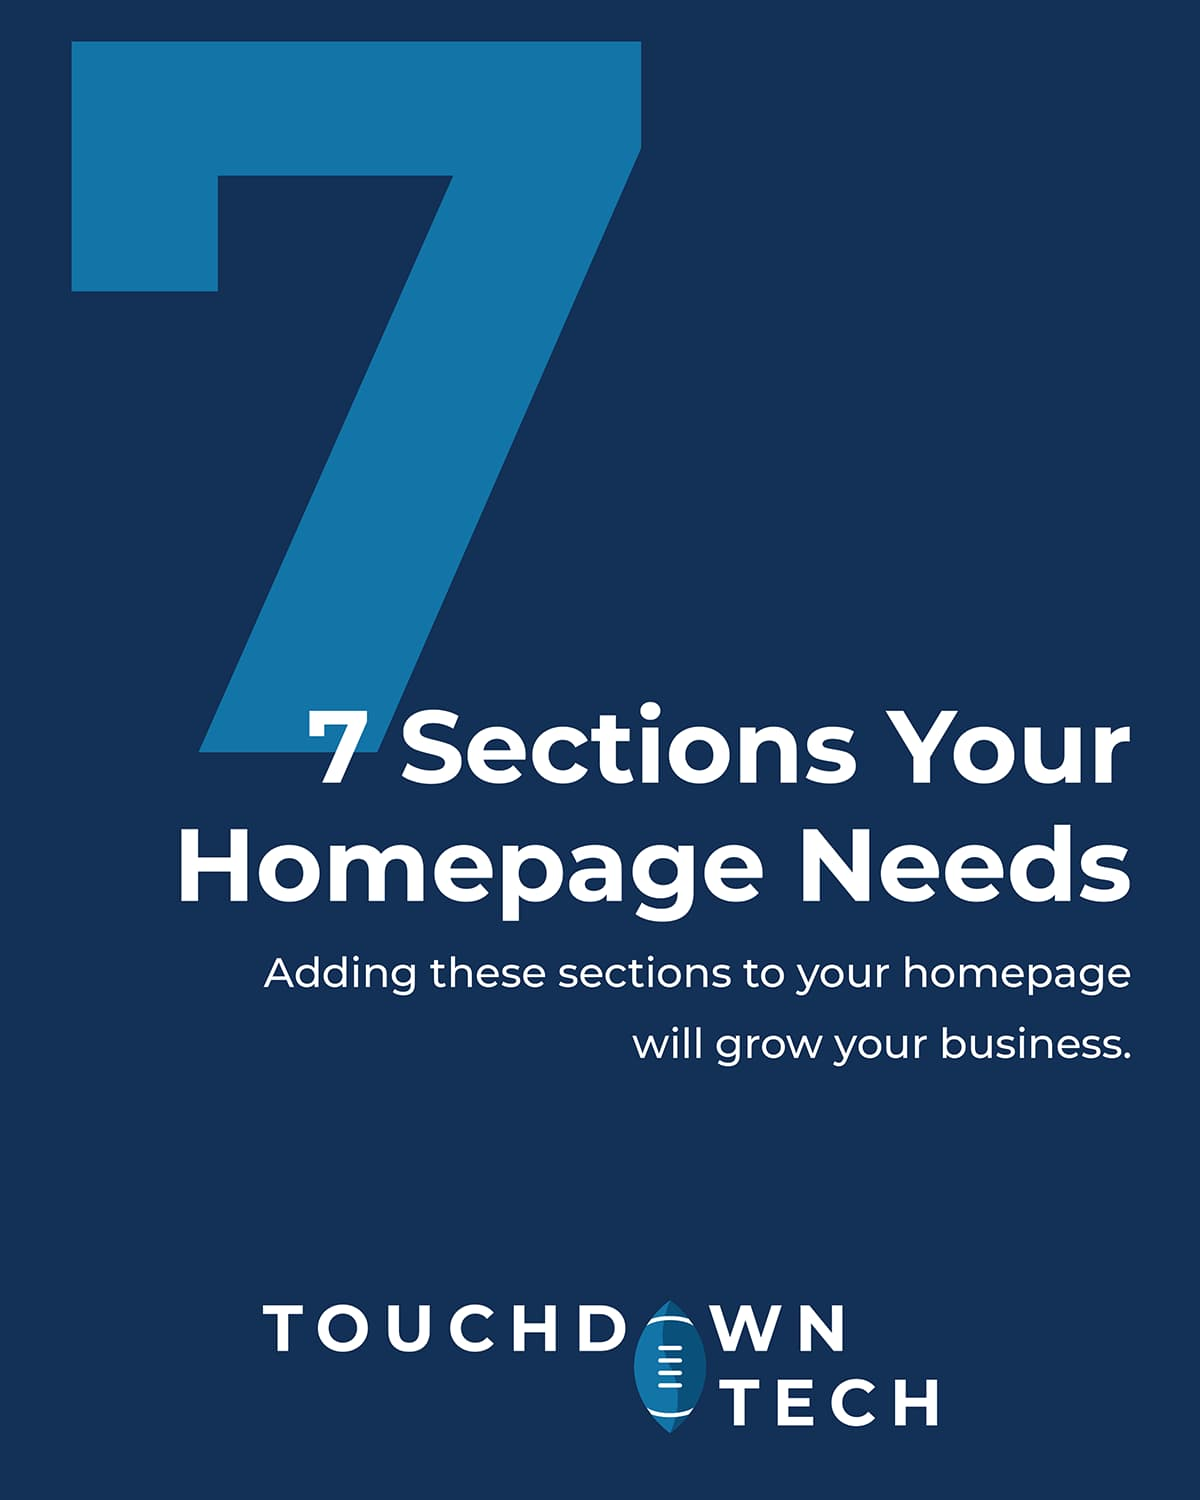 7 Sections Your Homepage Needs